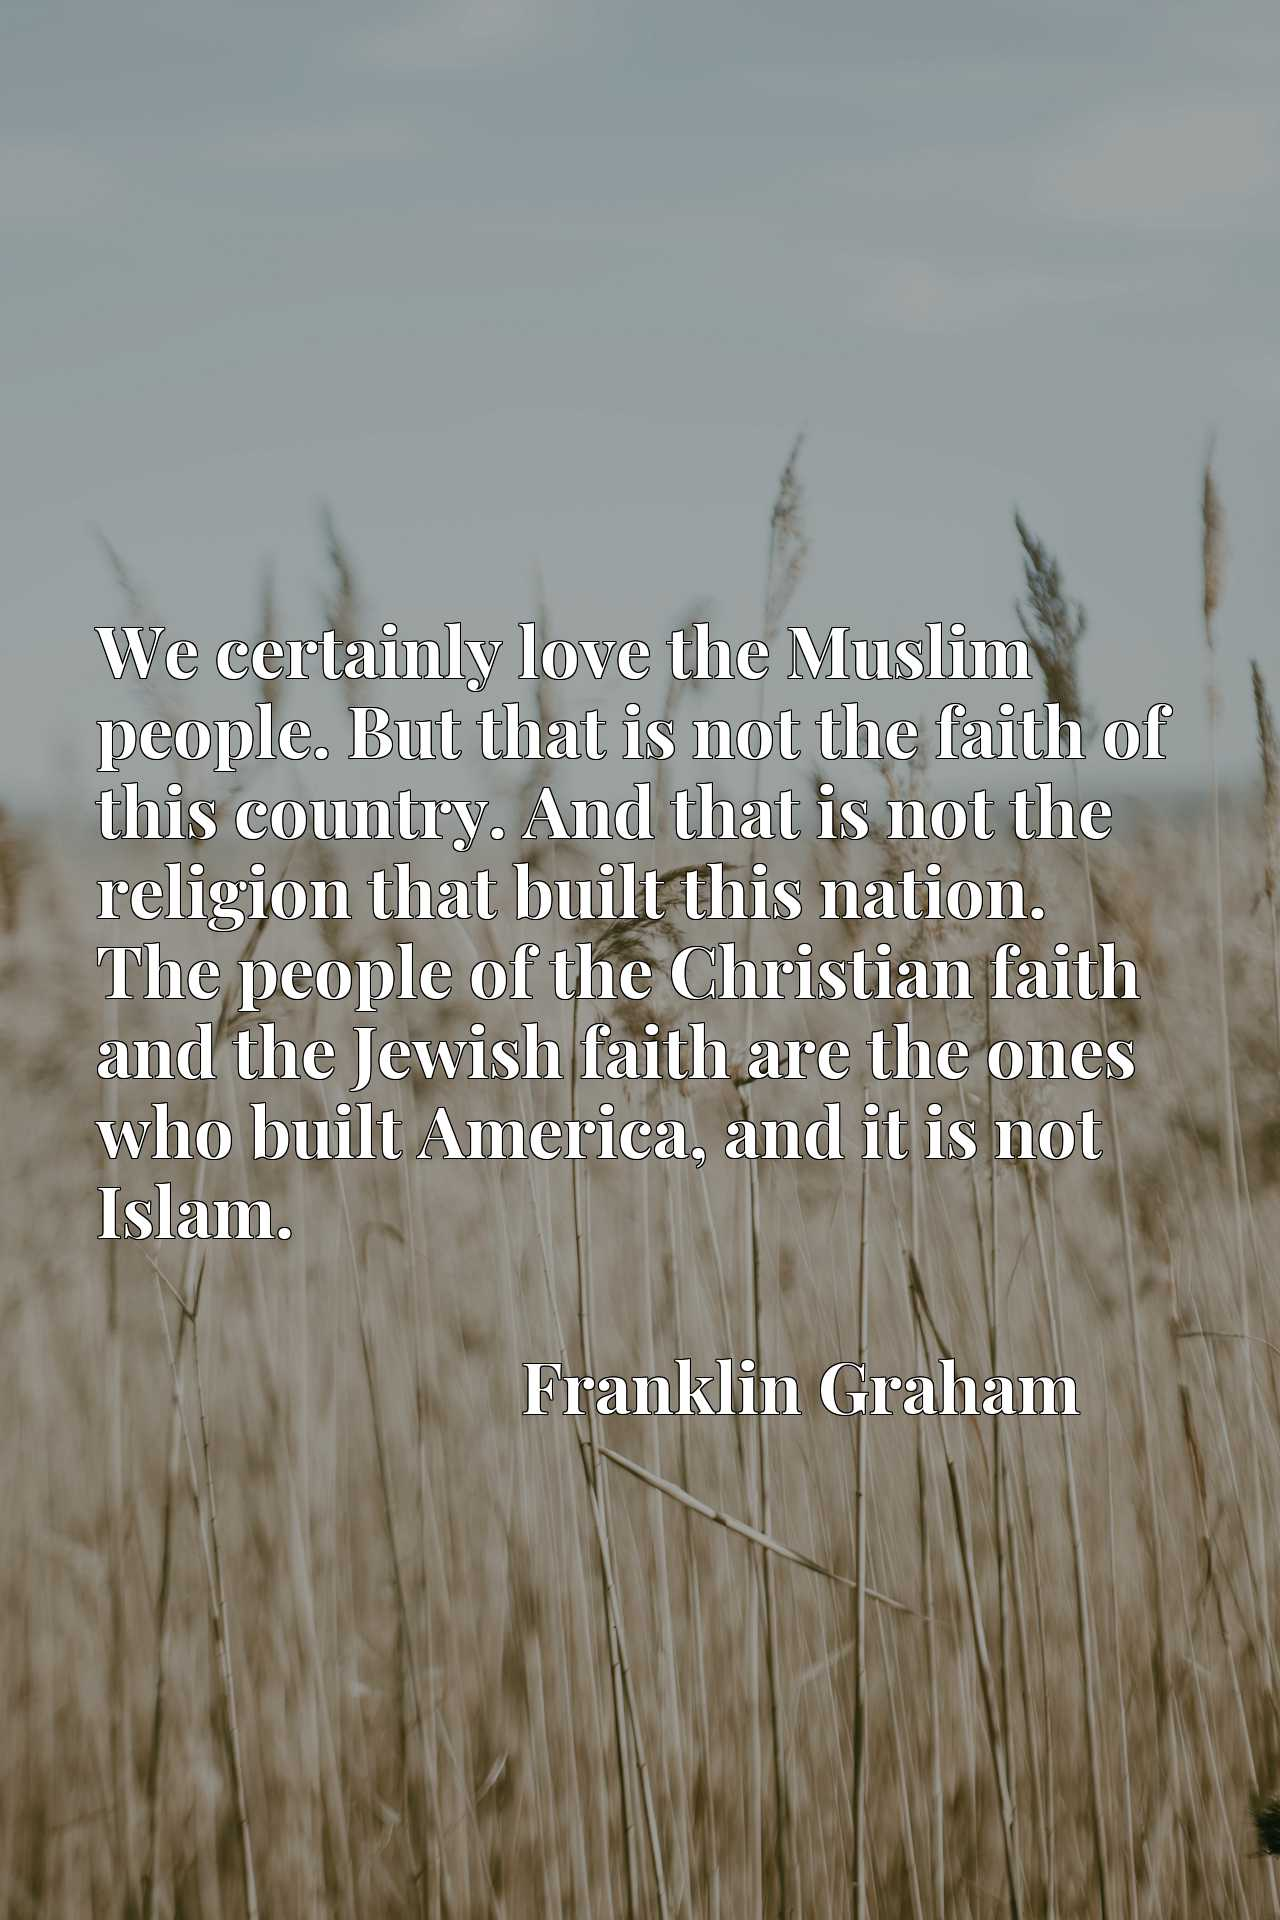 We certainly love the Muslim people. But that is not the faith of this country. And that is not the religion that built this nation. The people of the Christian faith and the Jewish faith are the ones who built America, and it is not Islam.